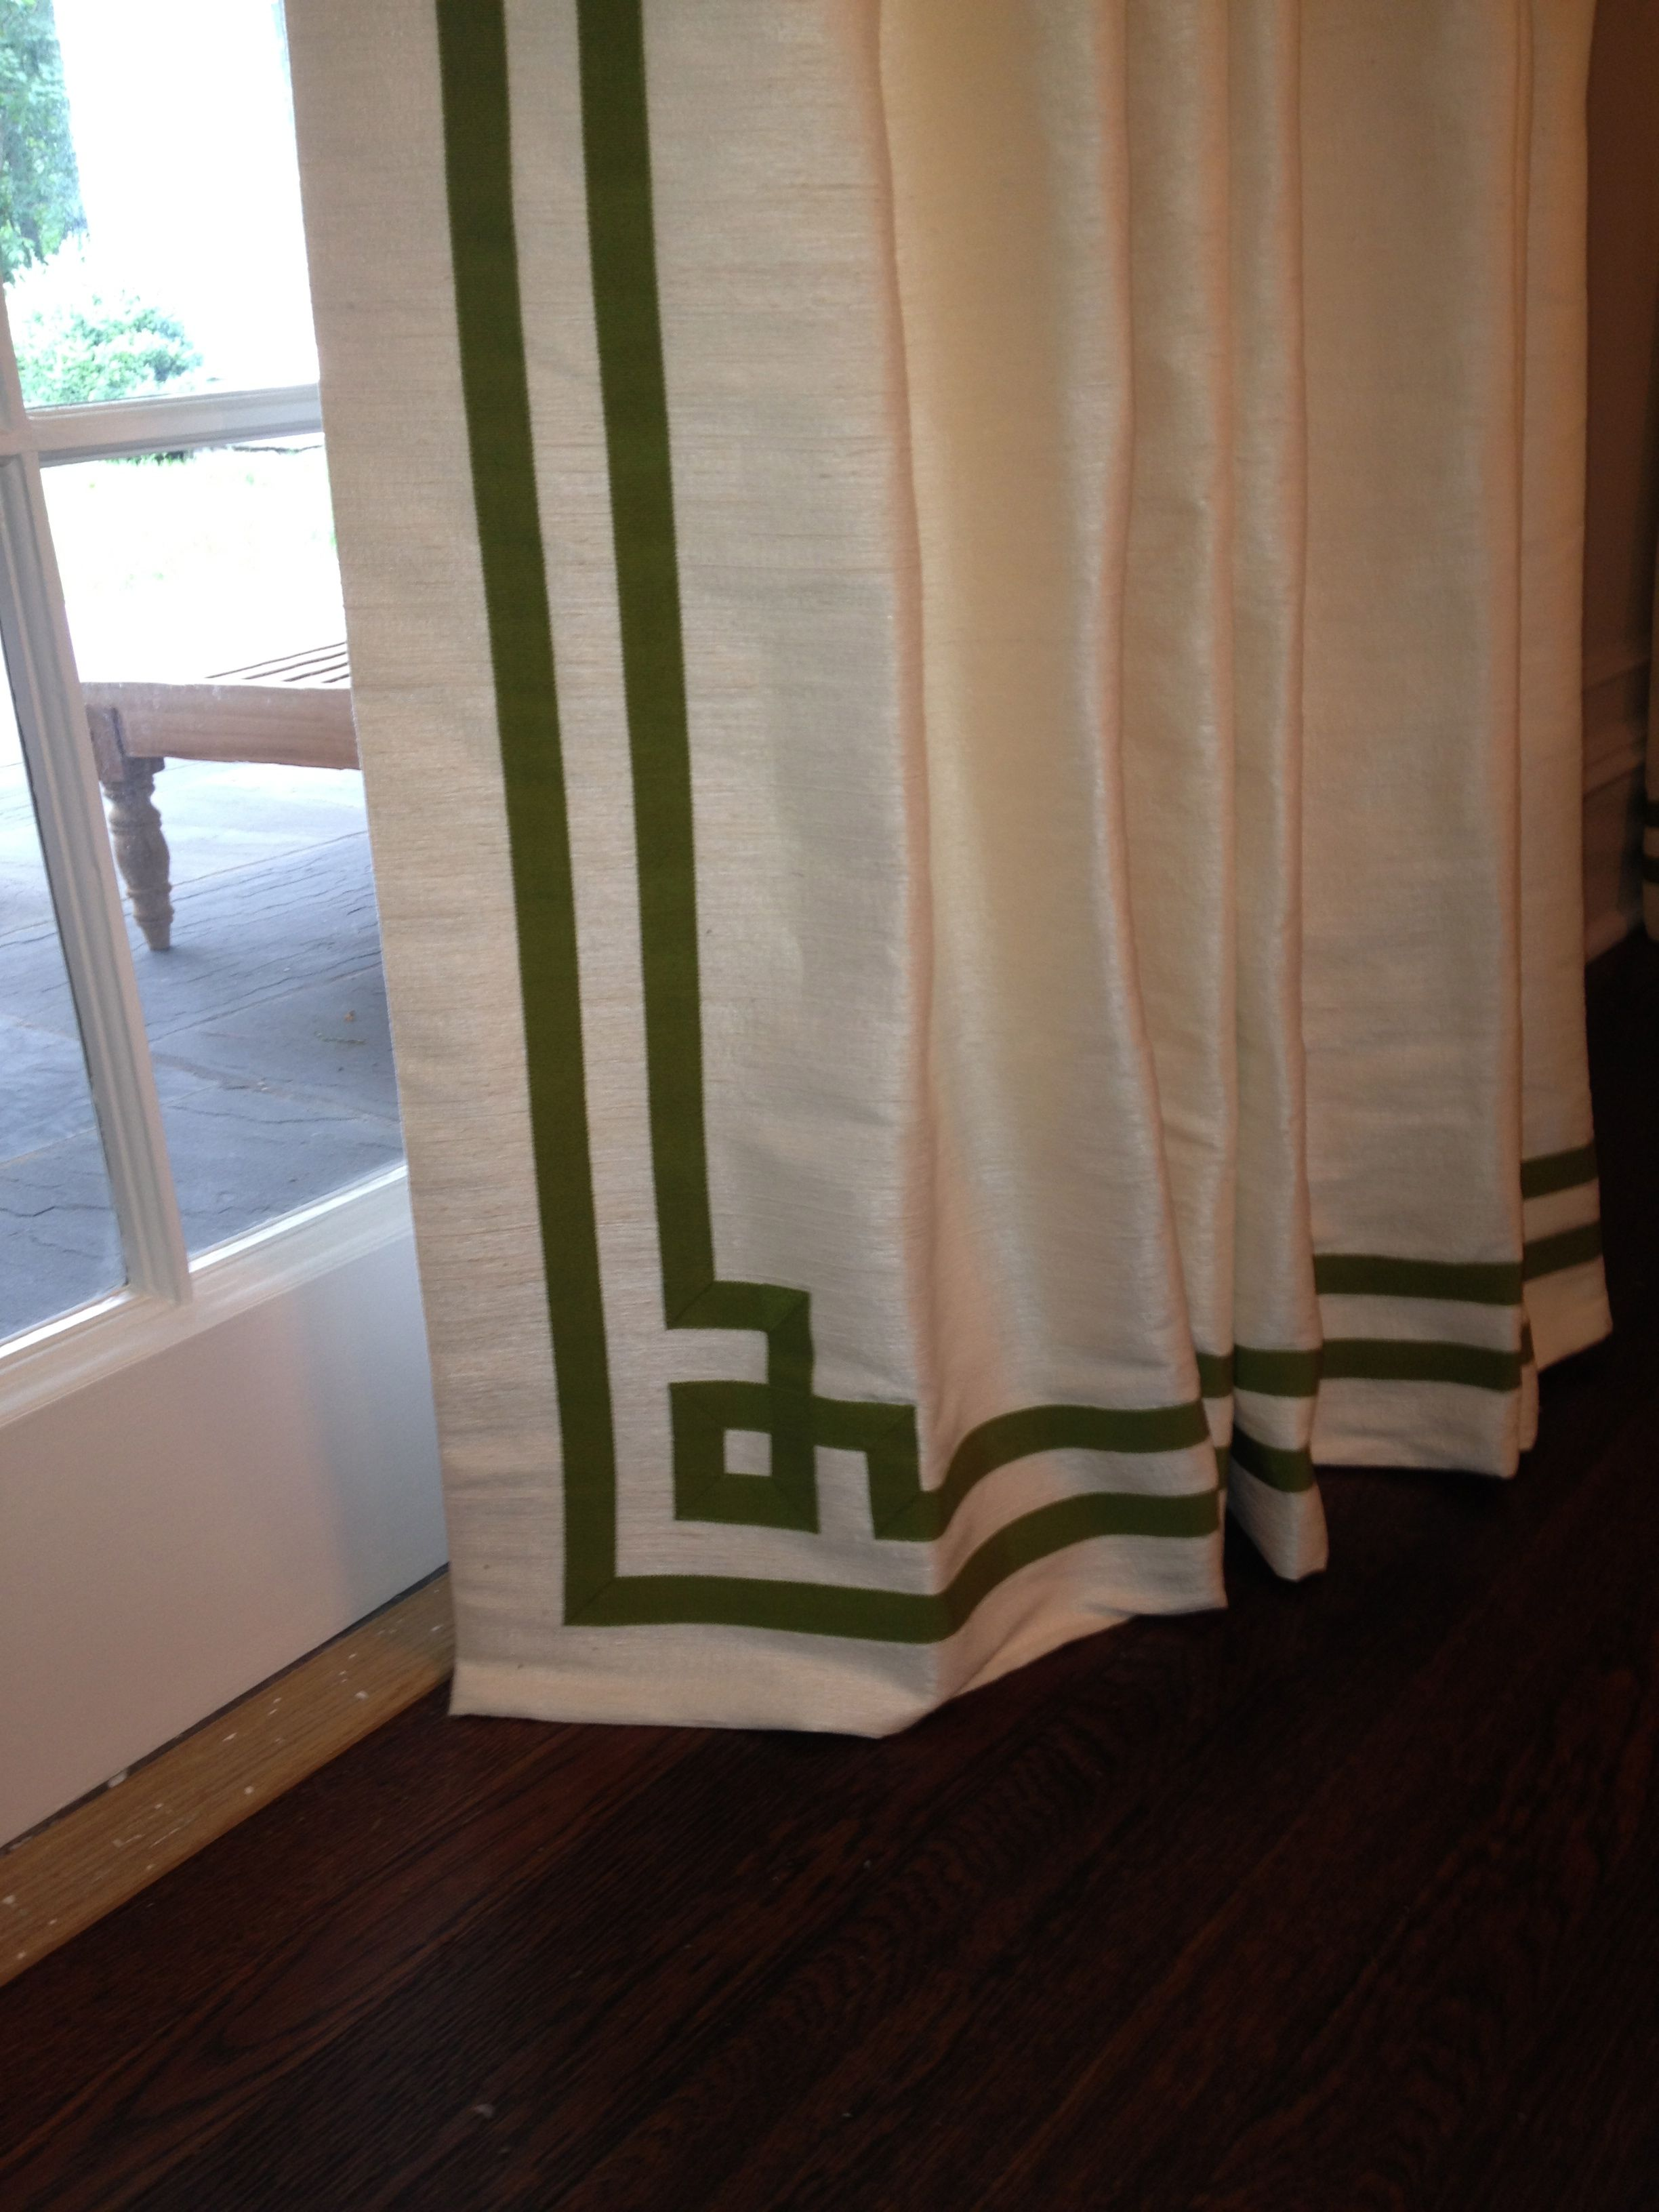 Curtain Detail Using Grosgrain Ribbon In Greek Key Pattern Drapery Tape Trim